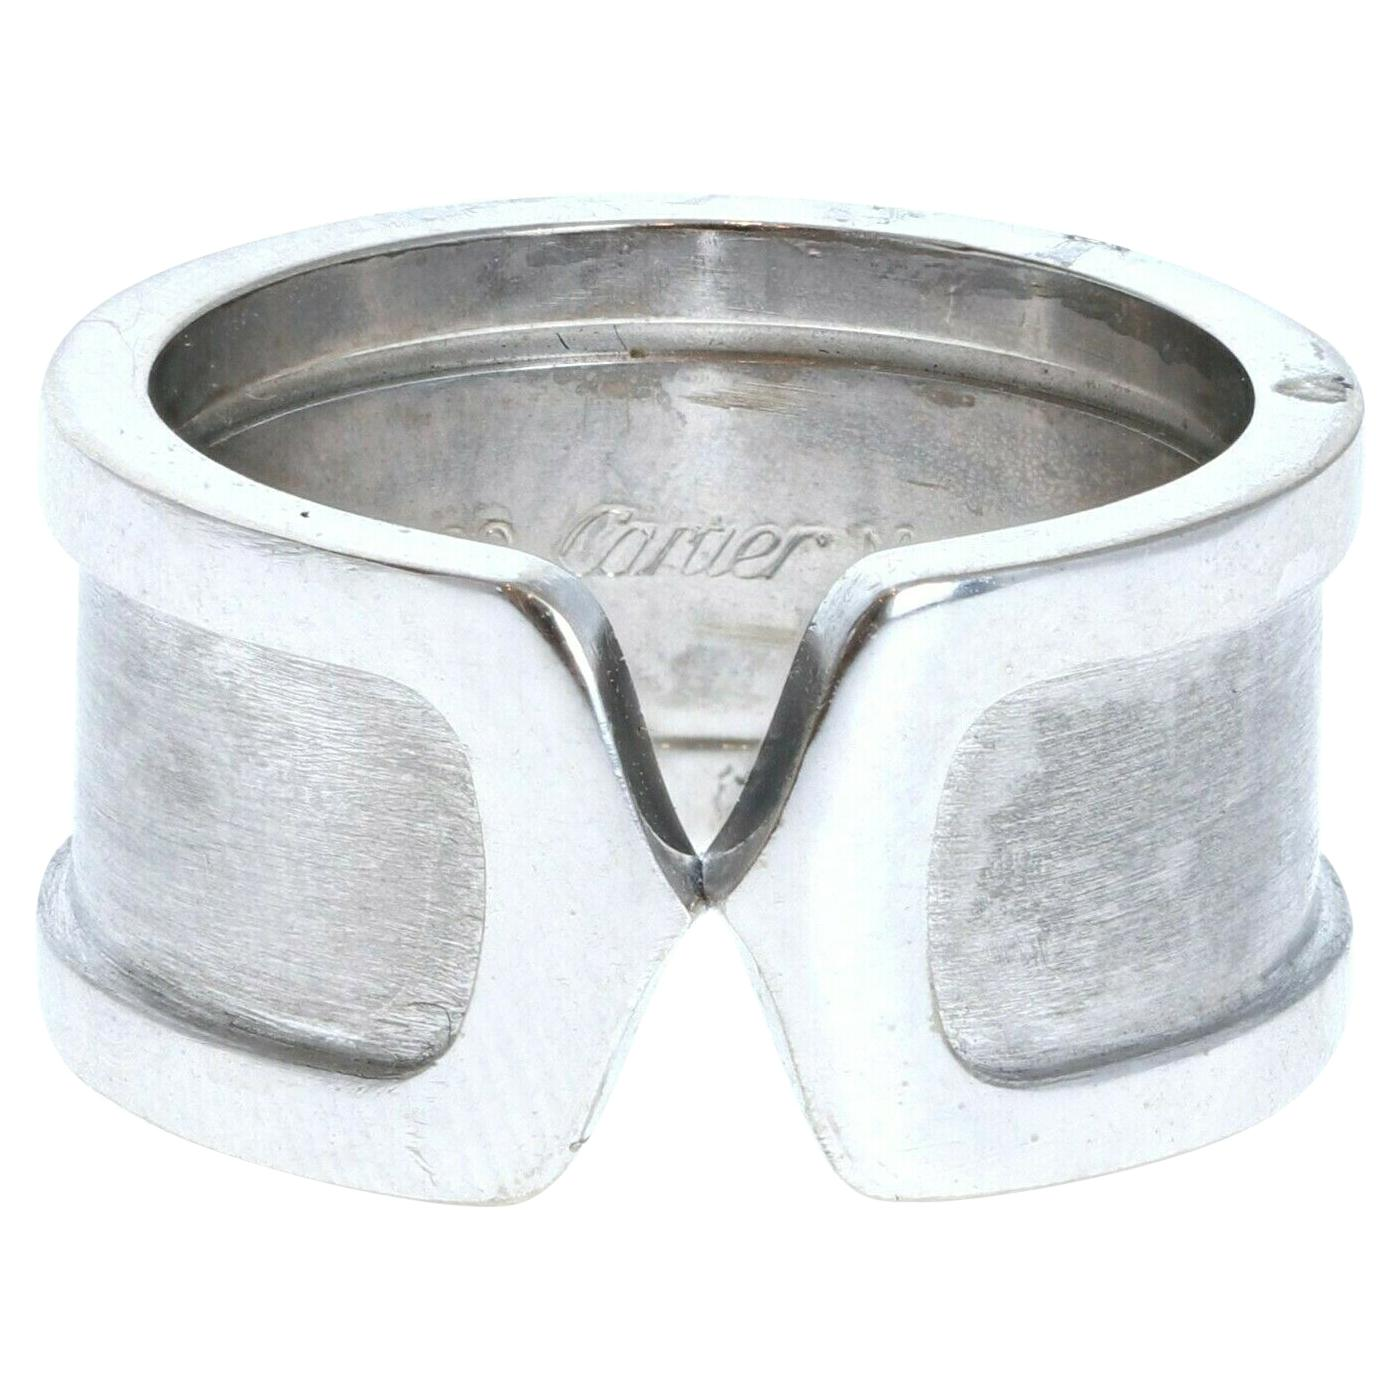 Cartier Double C 18K White Gold Ring